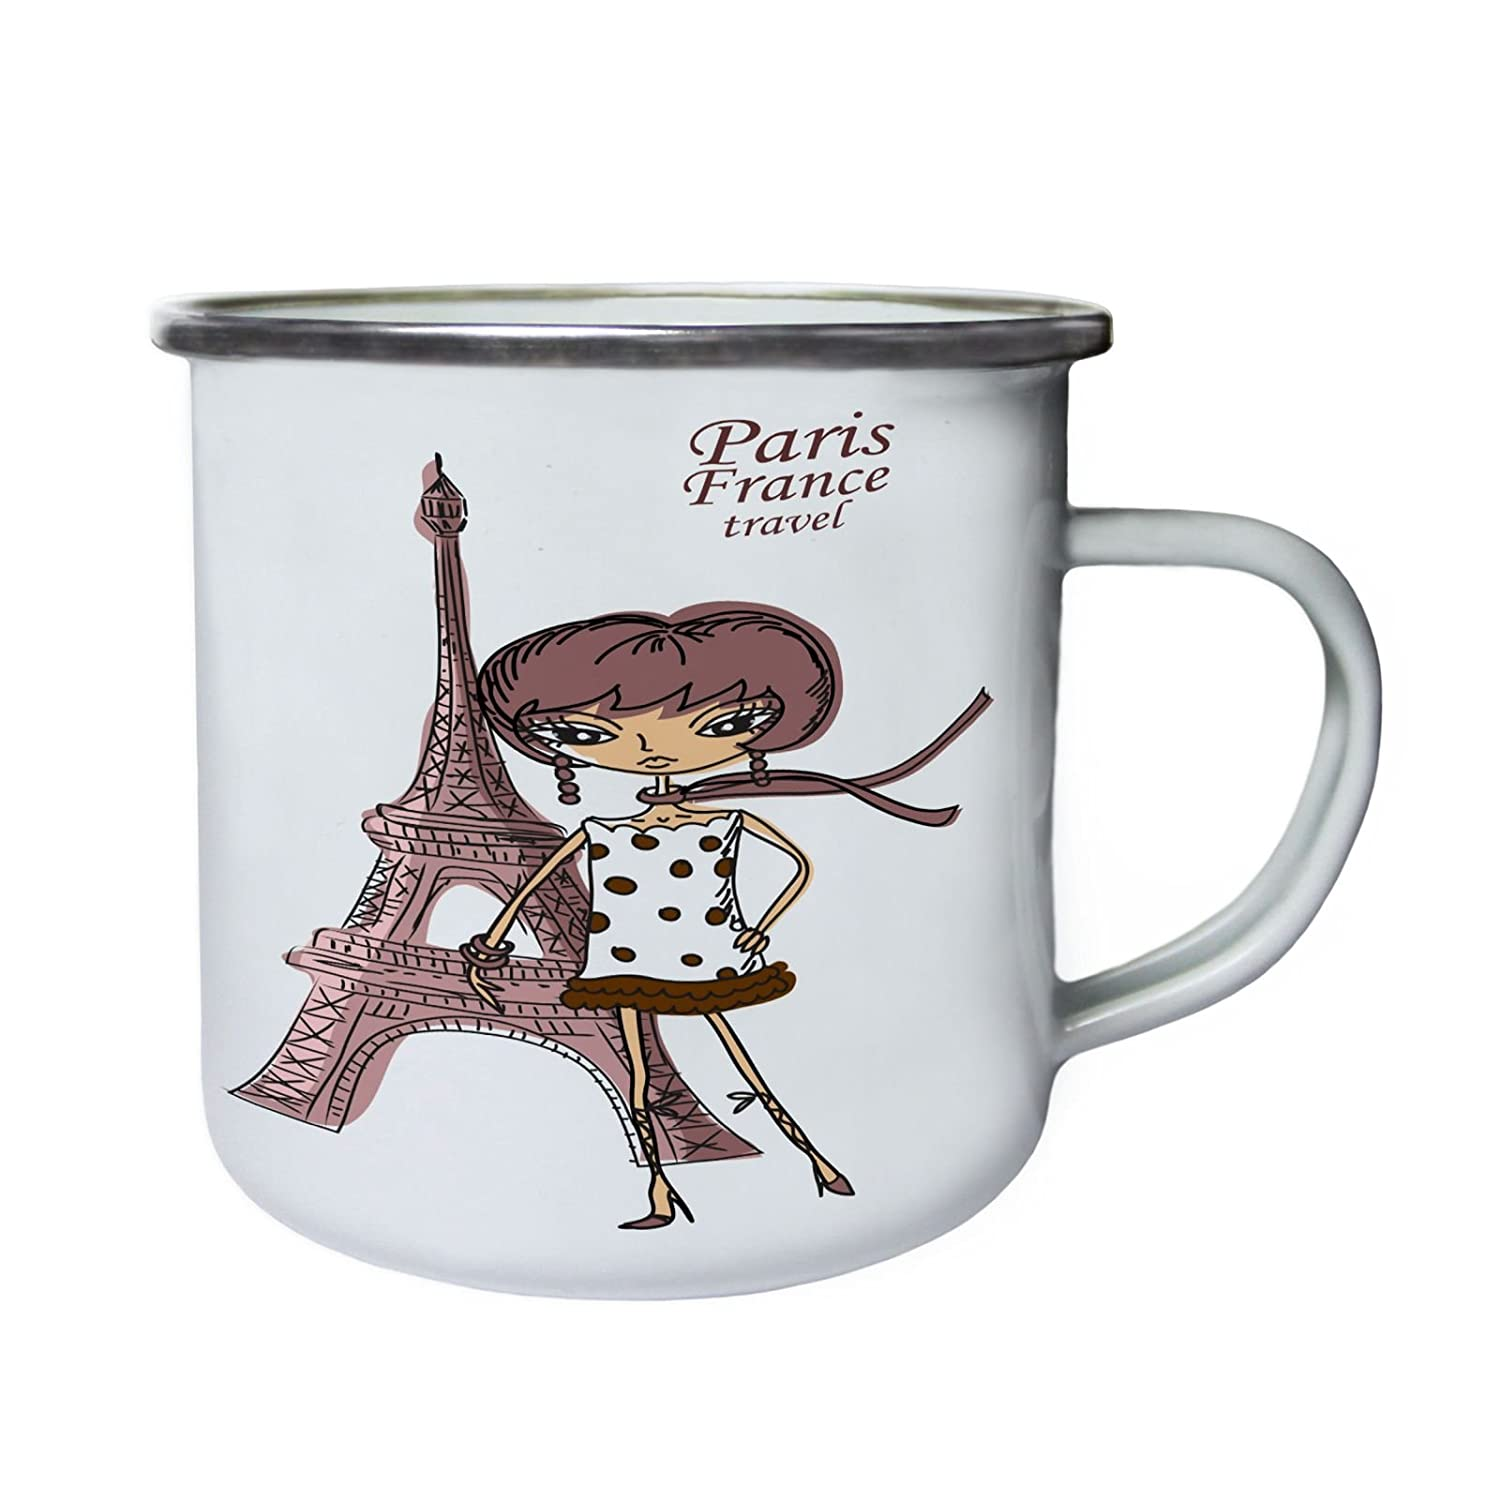 Paris France Travel Adventure Torre Eiffel Retro, lata, taza del esmalte 10oz/280ml x945e INNOGLEN